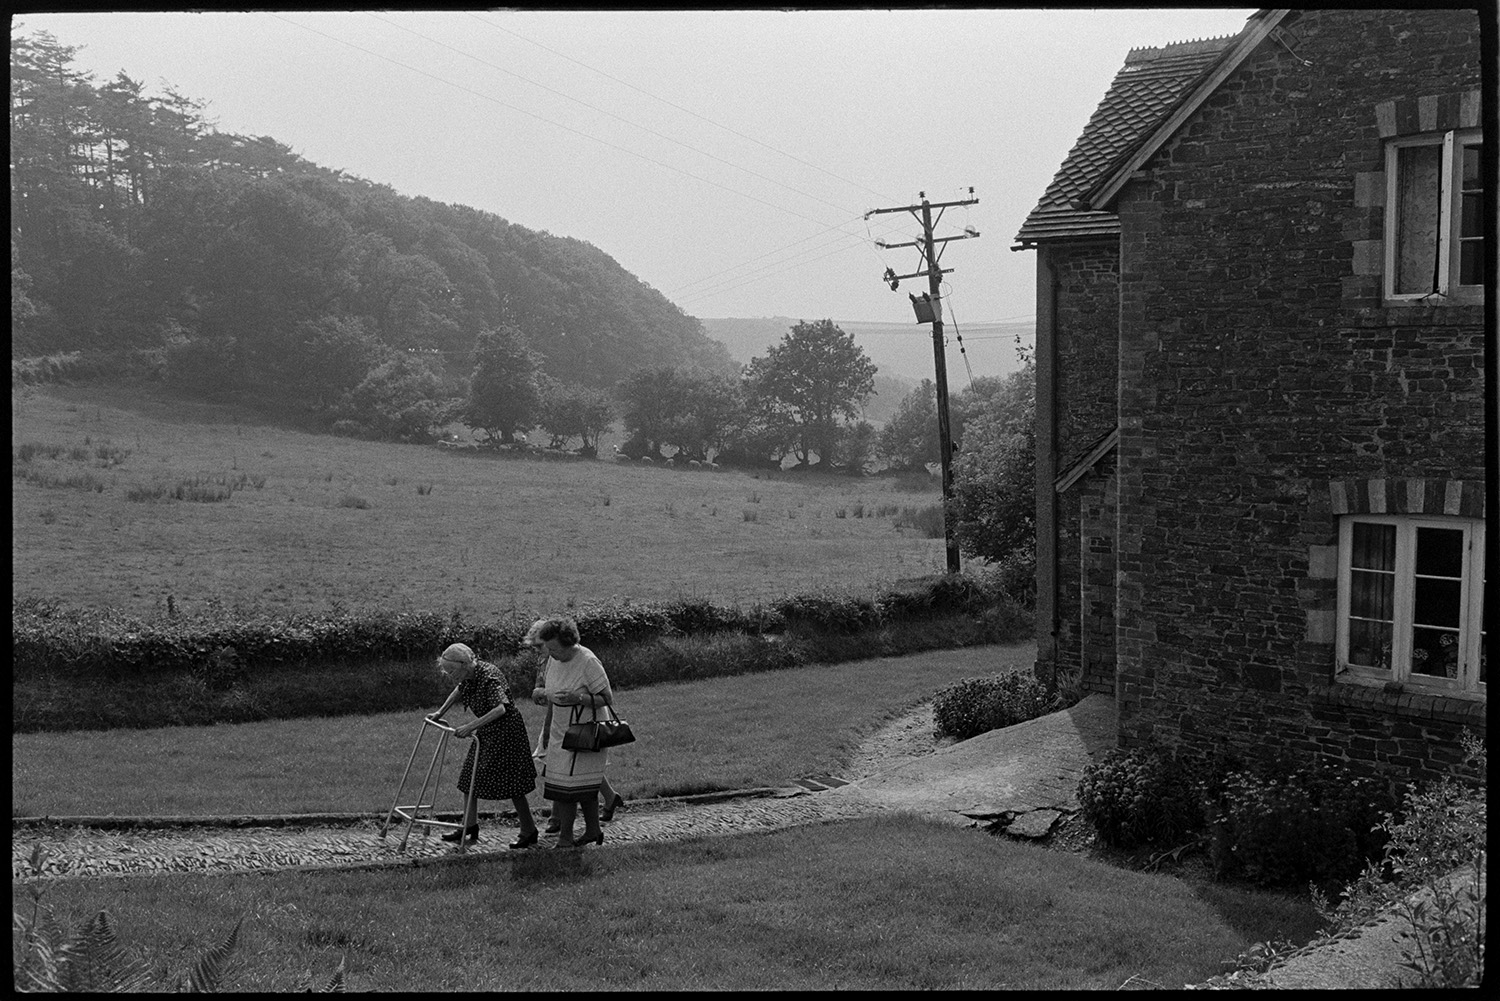 Elderly women with walking frame leaving cottage. <br /> [Two women helping another woman using a walking frame walk along a cobbled path away from a stone cottage at Wordens Cottages, Kingscott. A field with trees can be seen in the background.]